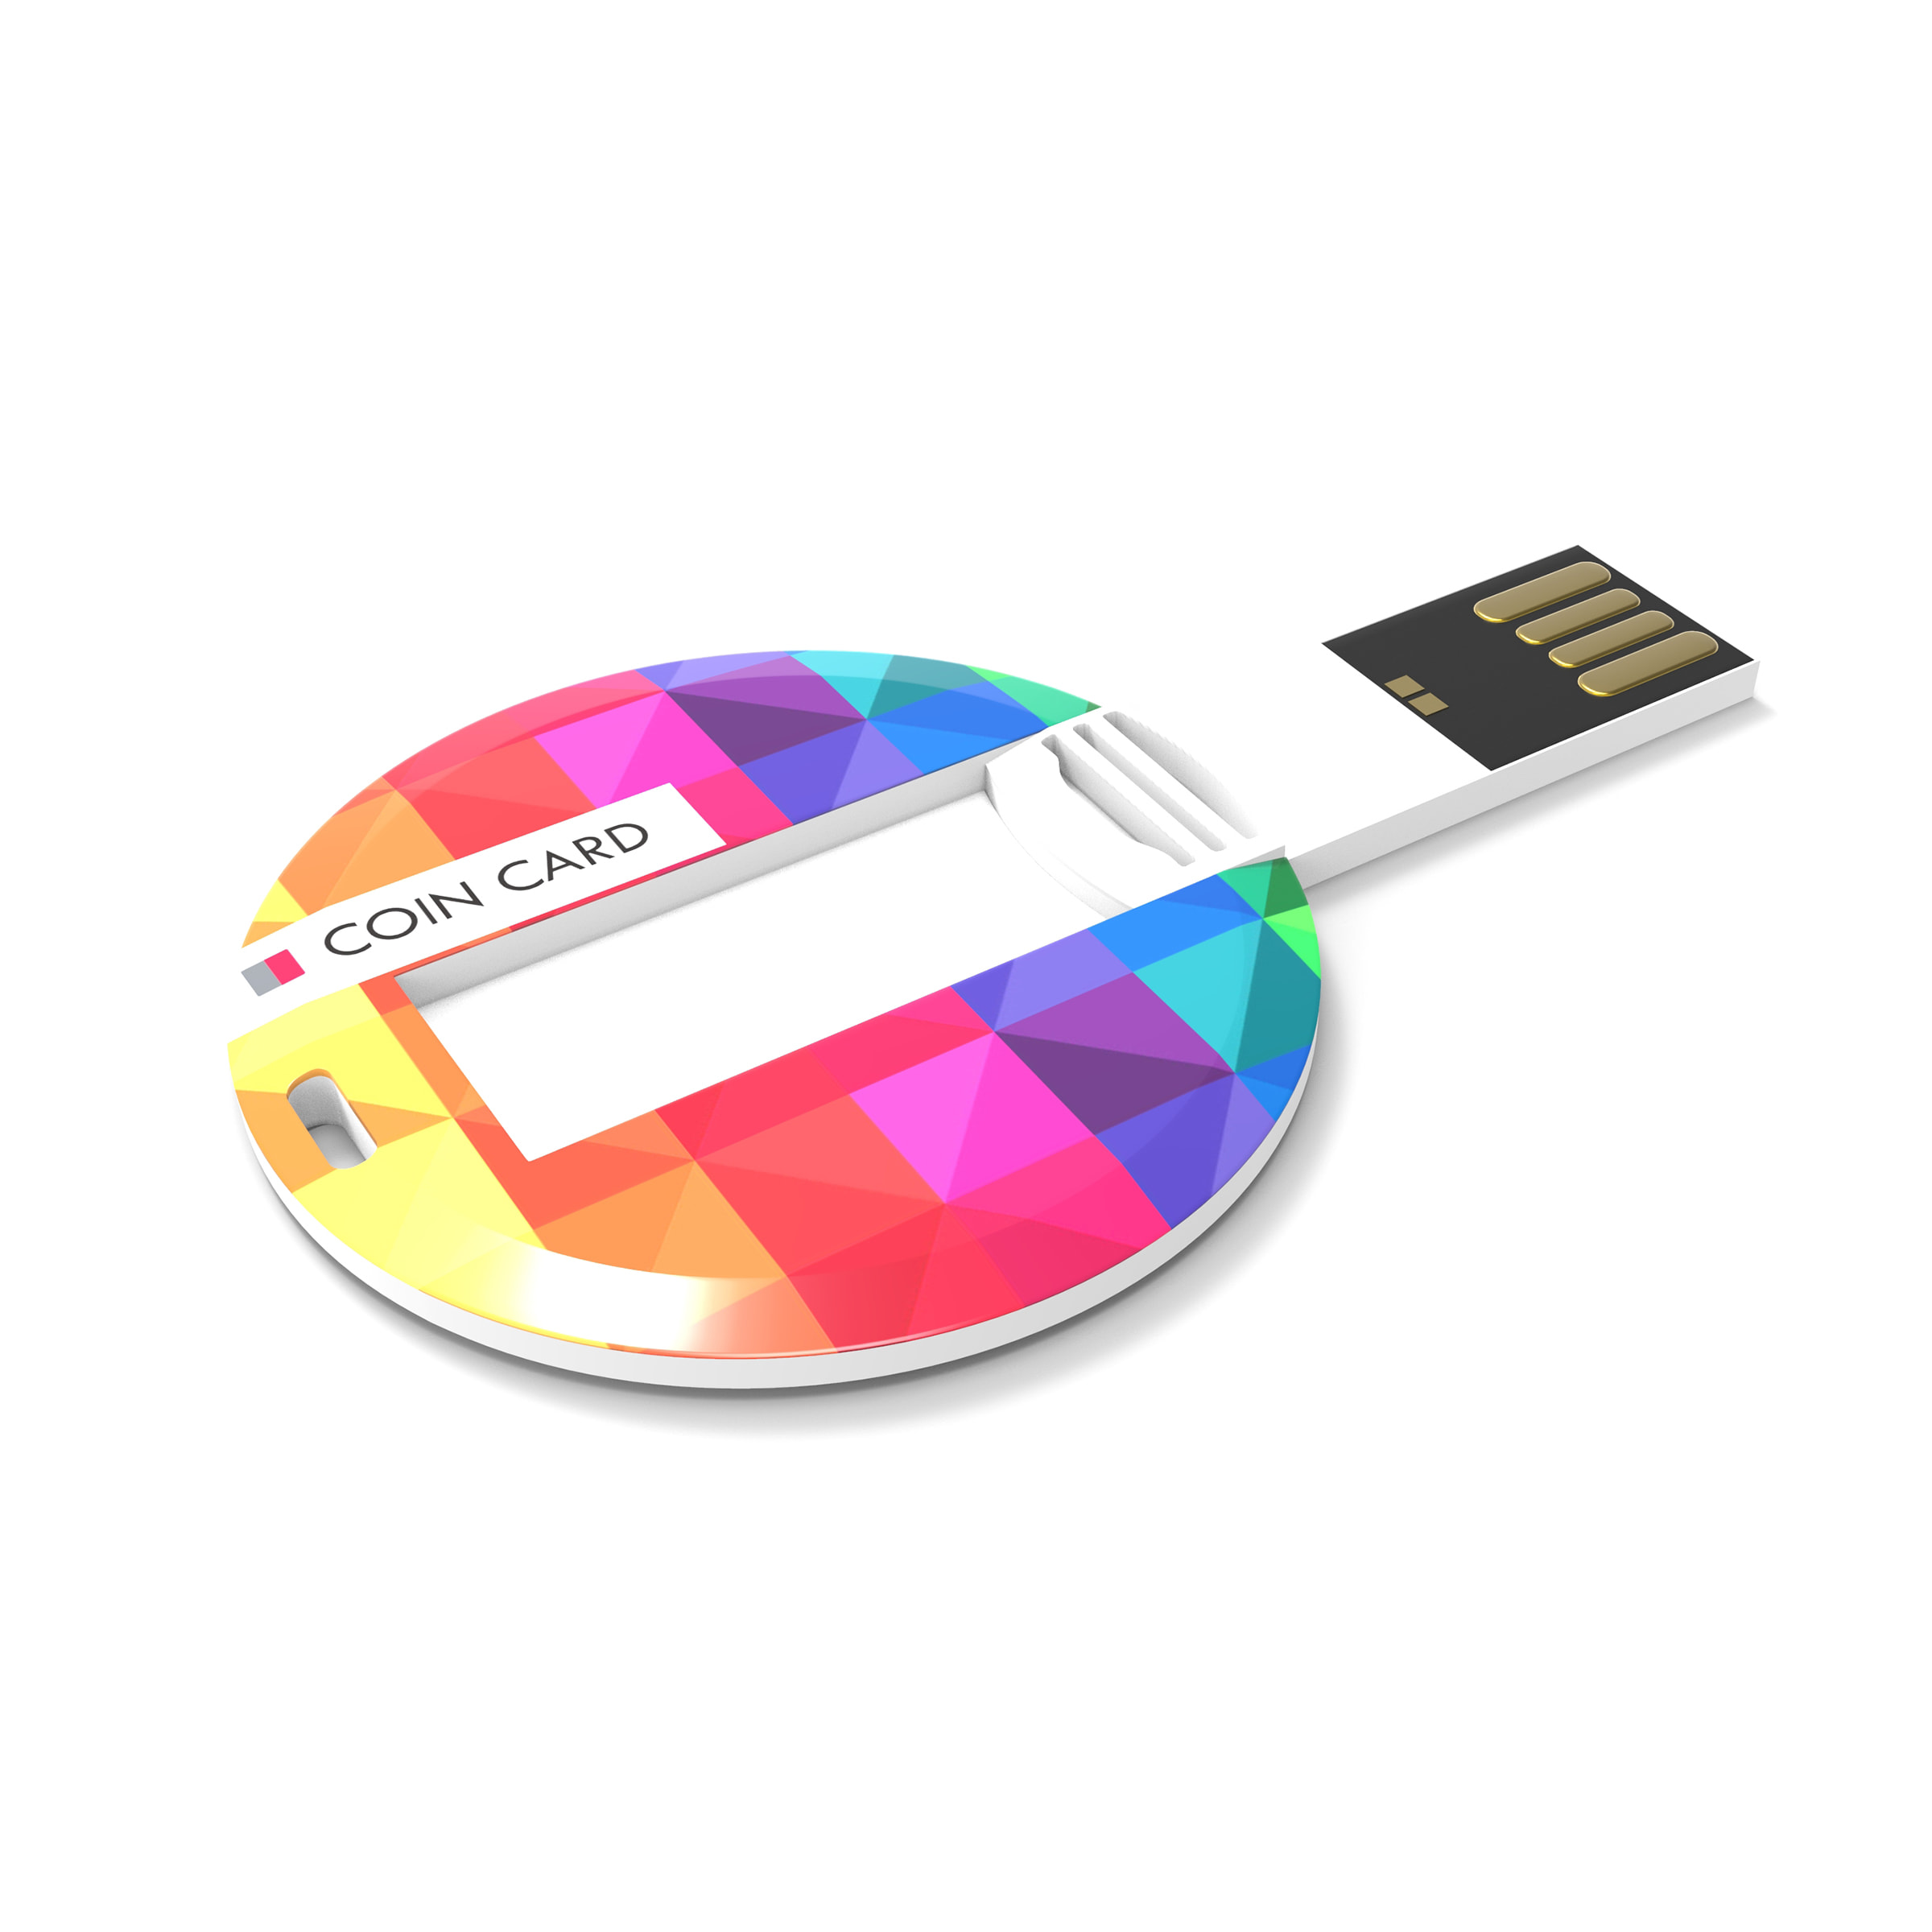 USB Coin Card